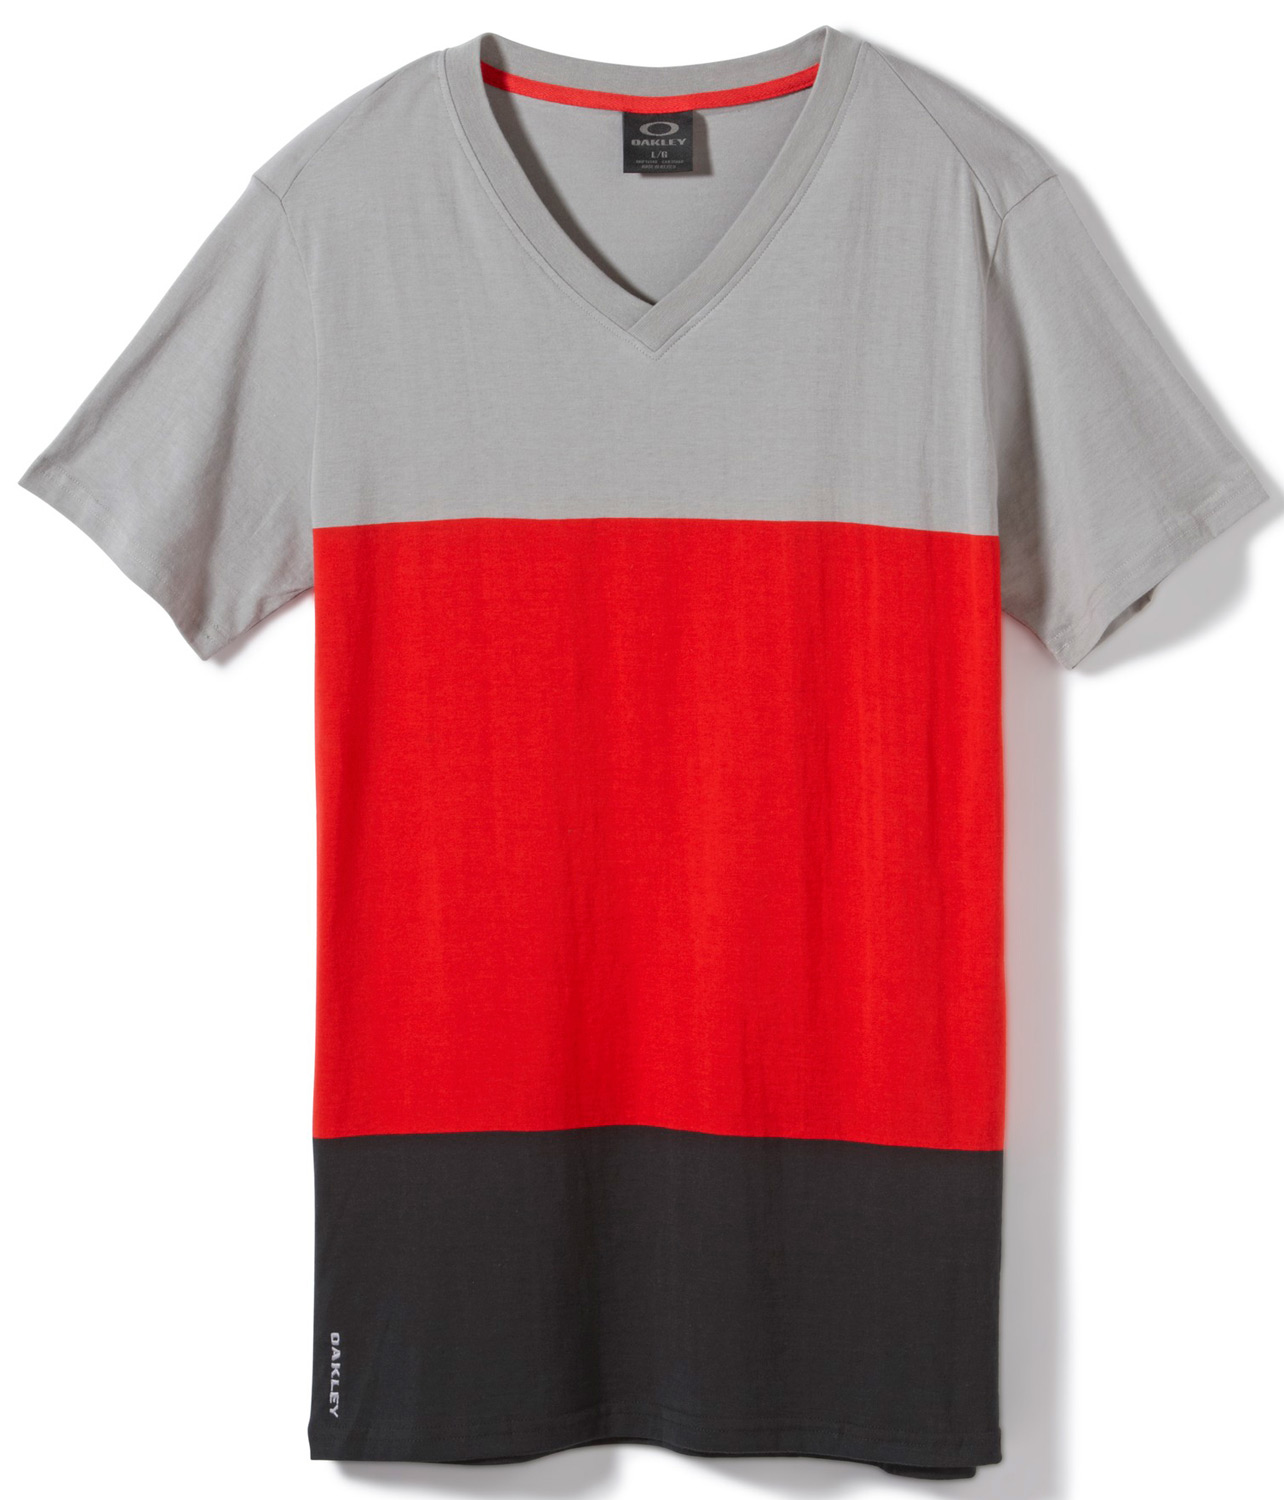 Yarn-dye V-neck color block knit with logo embroidery.Key Features of the Oakley Mudskipper V Shirt: 100% Cotton - $21.95